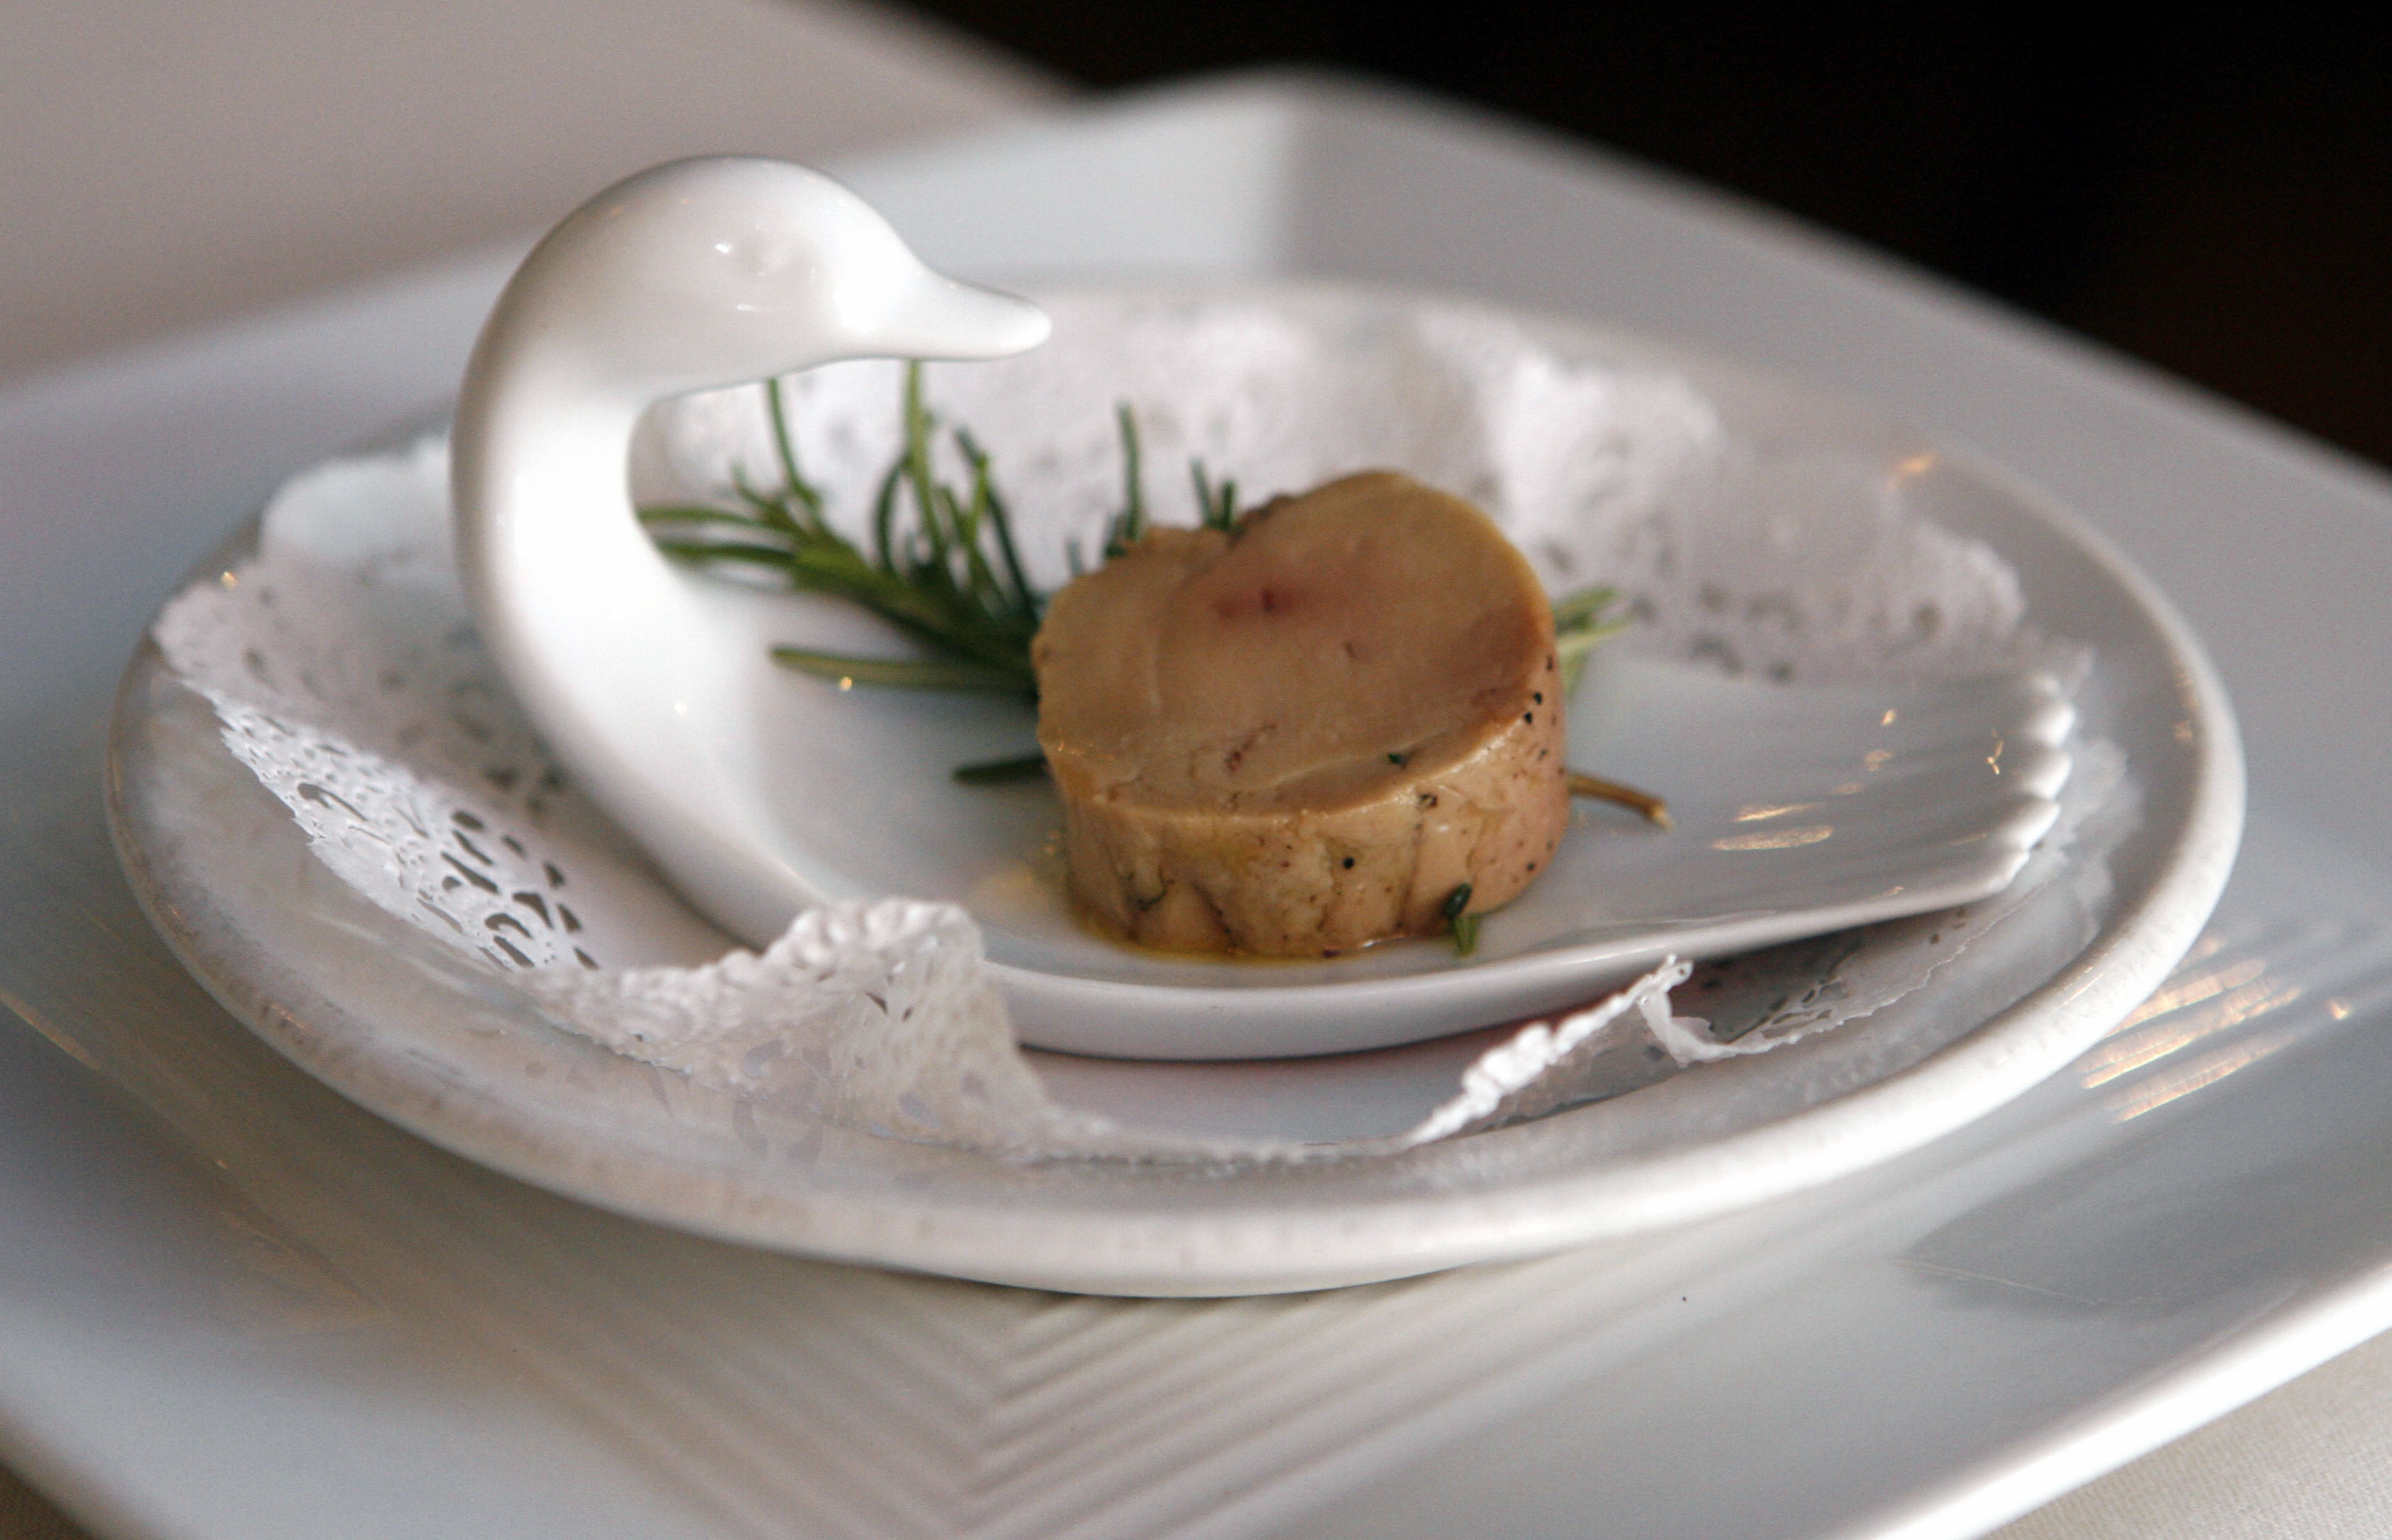 In this Aug. 9, 2006, file photo, a serving of salt-cured fresh foie gras with herbs is displayed at chef Didier Durand's Cyrano's Bistrot & Wine Bar in Chicago